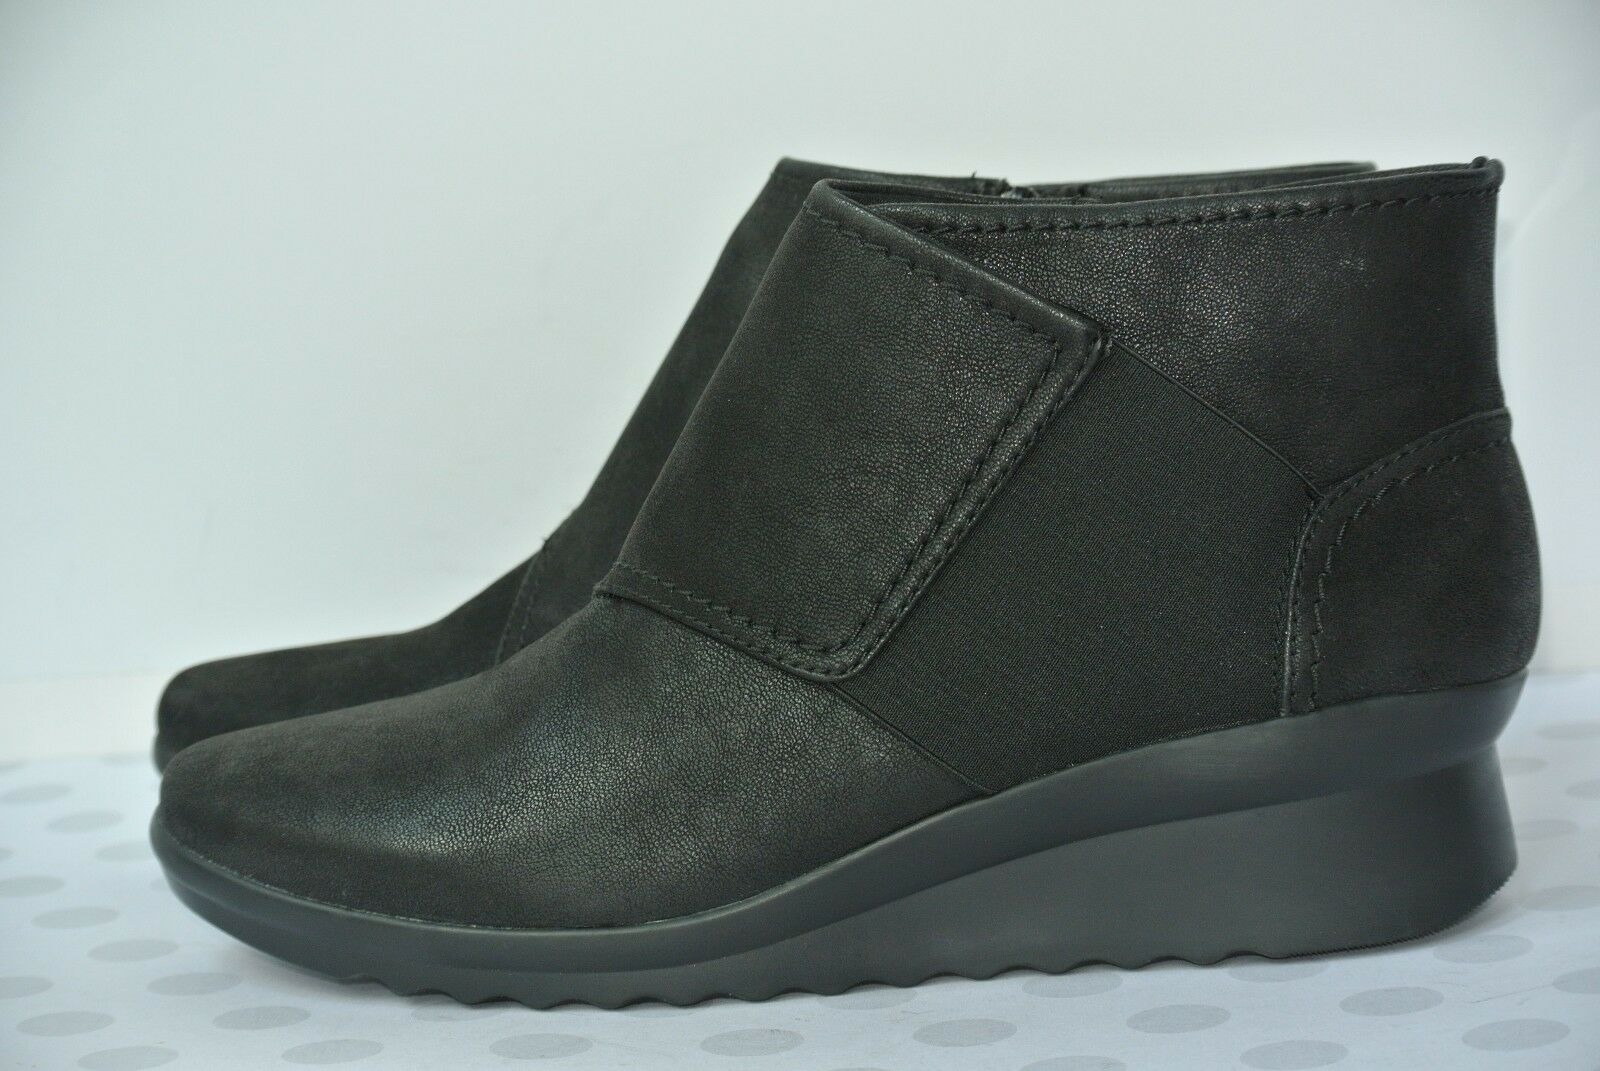 NEW Clarks Cloud Stepper Caddell Rush Womens Sz 9.5 M Black Ankle Boots